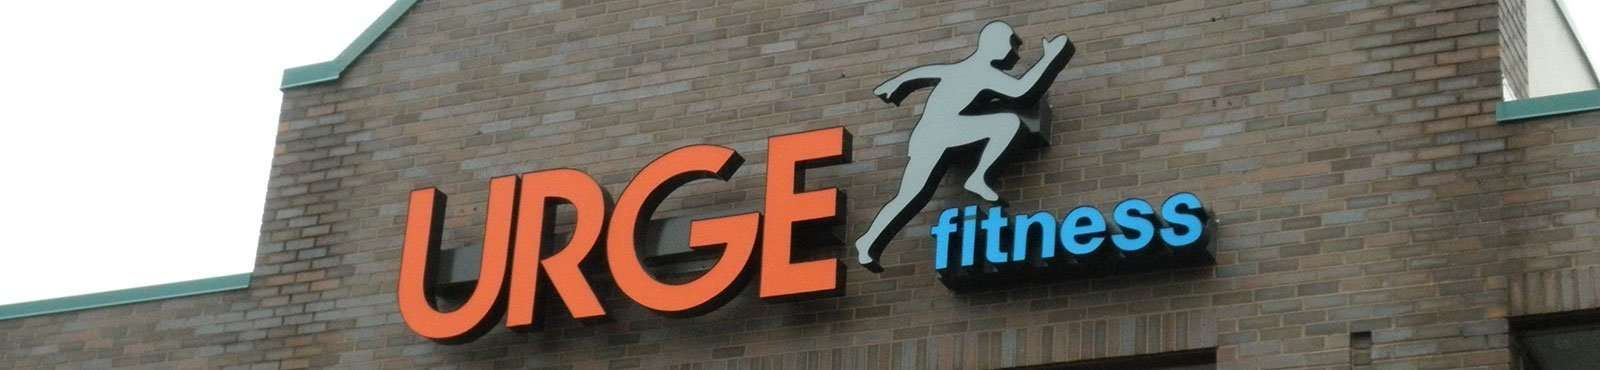 Custom Channel Letter Sign for Fitness Business